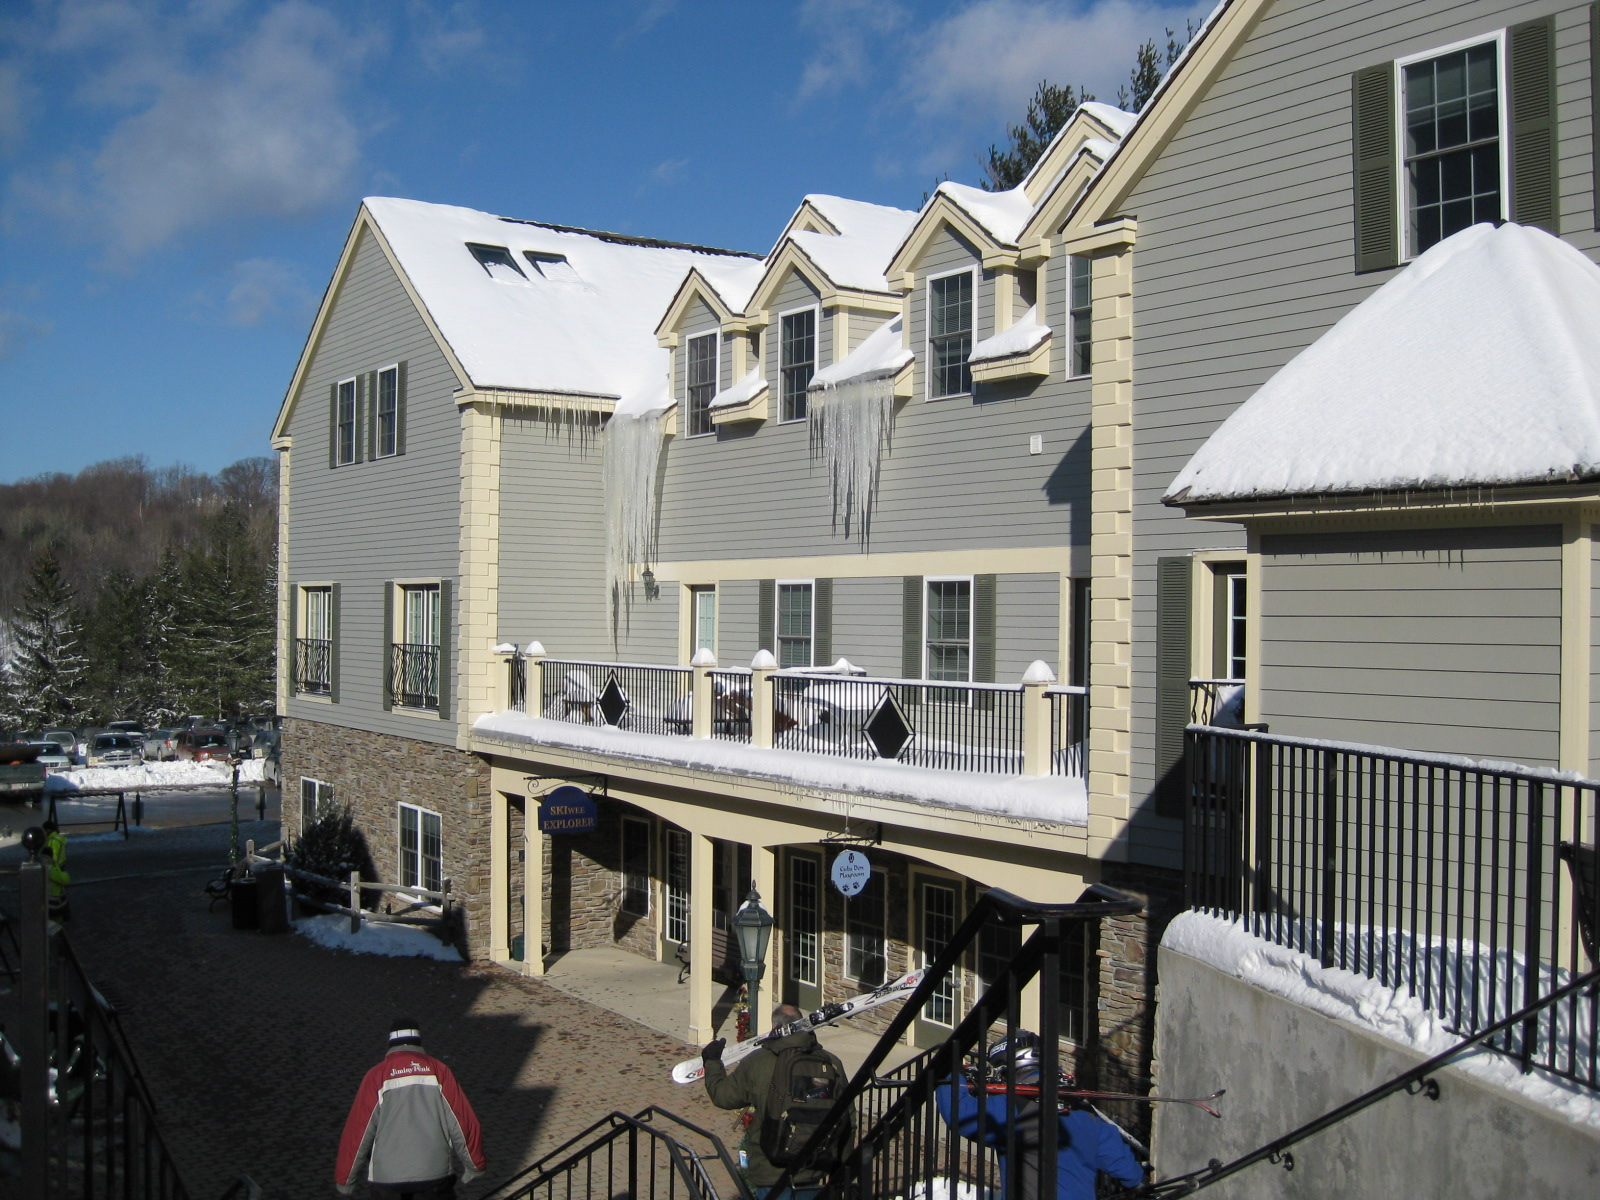 Village Center/Mountainside Condos at Jiminy Peak